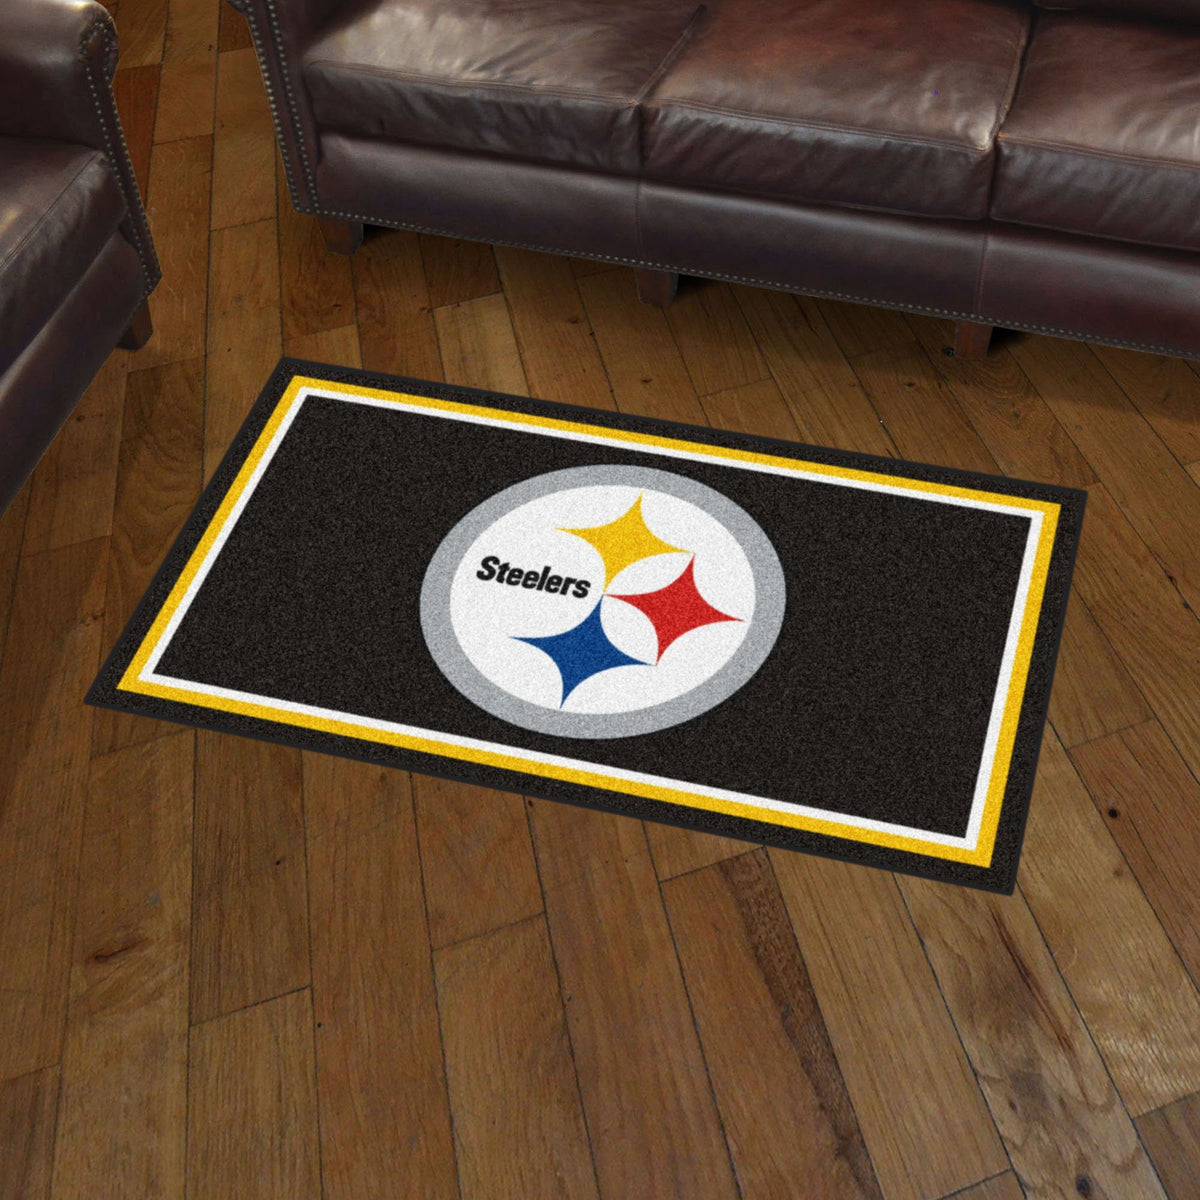 NFL - 3' x 5' Rug NFL Mats, Plush Rugs, 3x5 Rug, NFL, Home Fan Mats Pittsburgh Steelers